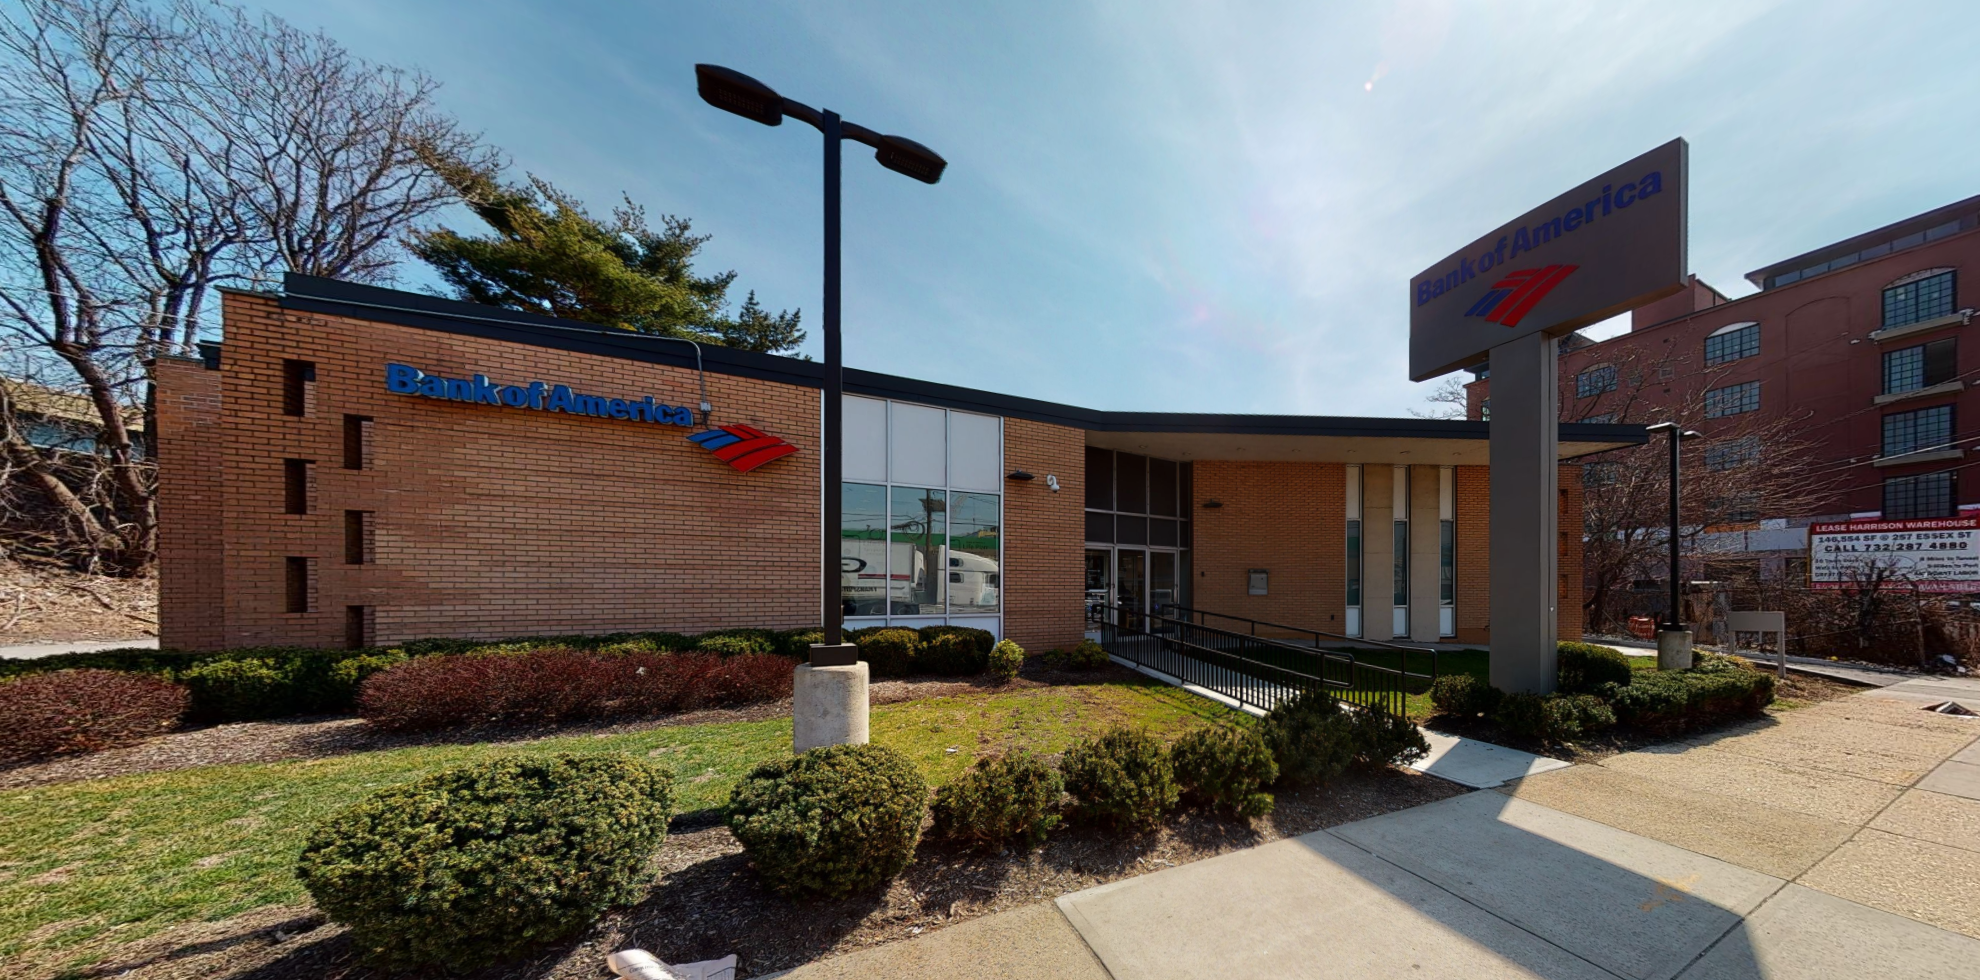 Bank of America financial center with drive-thru ATM | 500 Frank E Rodgers Blvd S, Harrison, NJ 07029